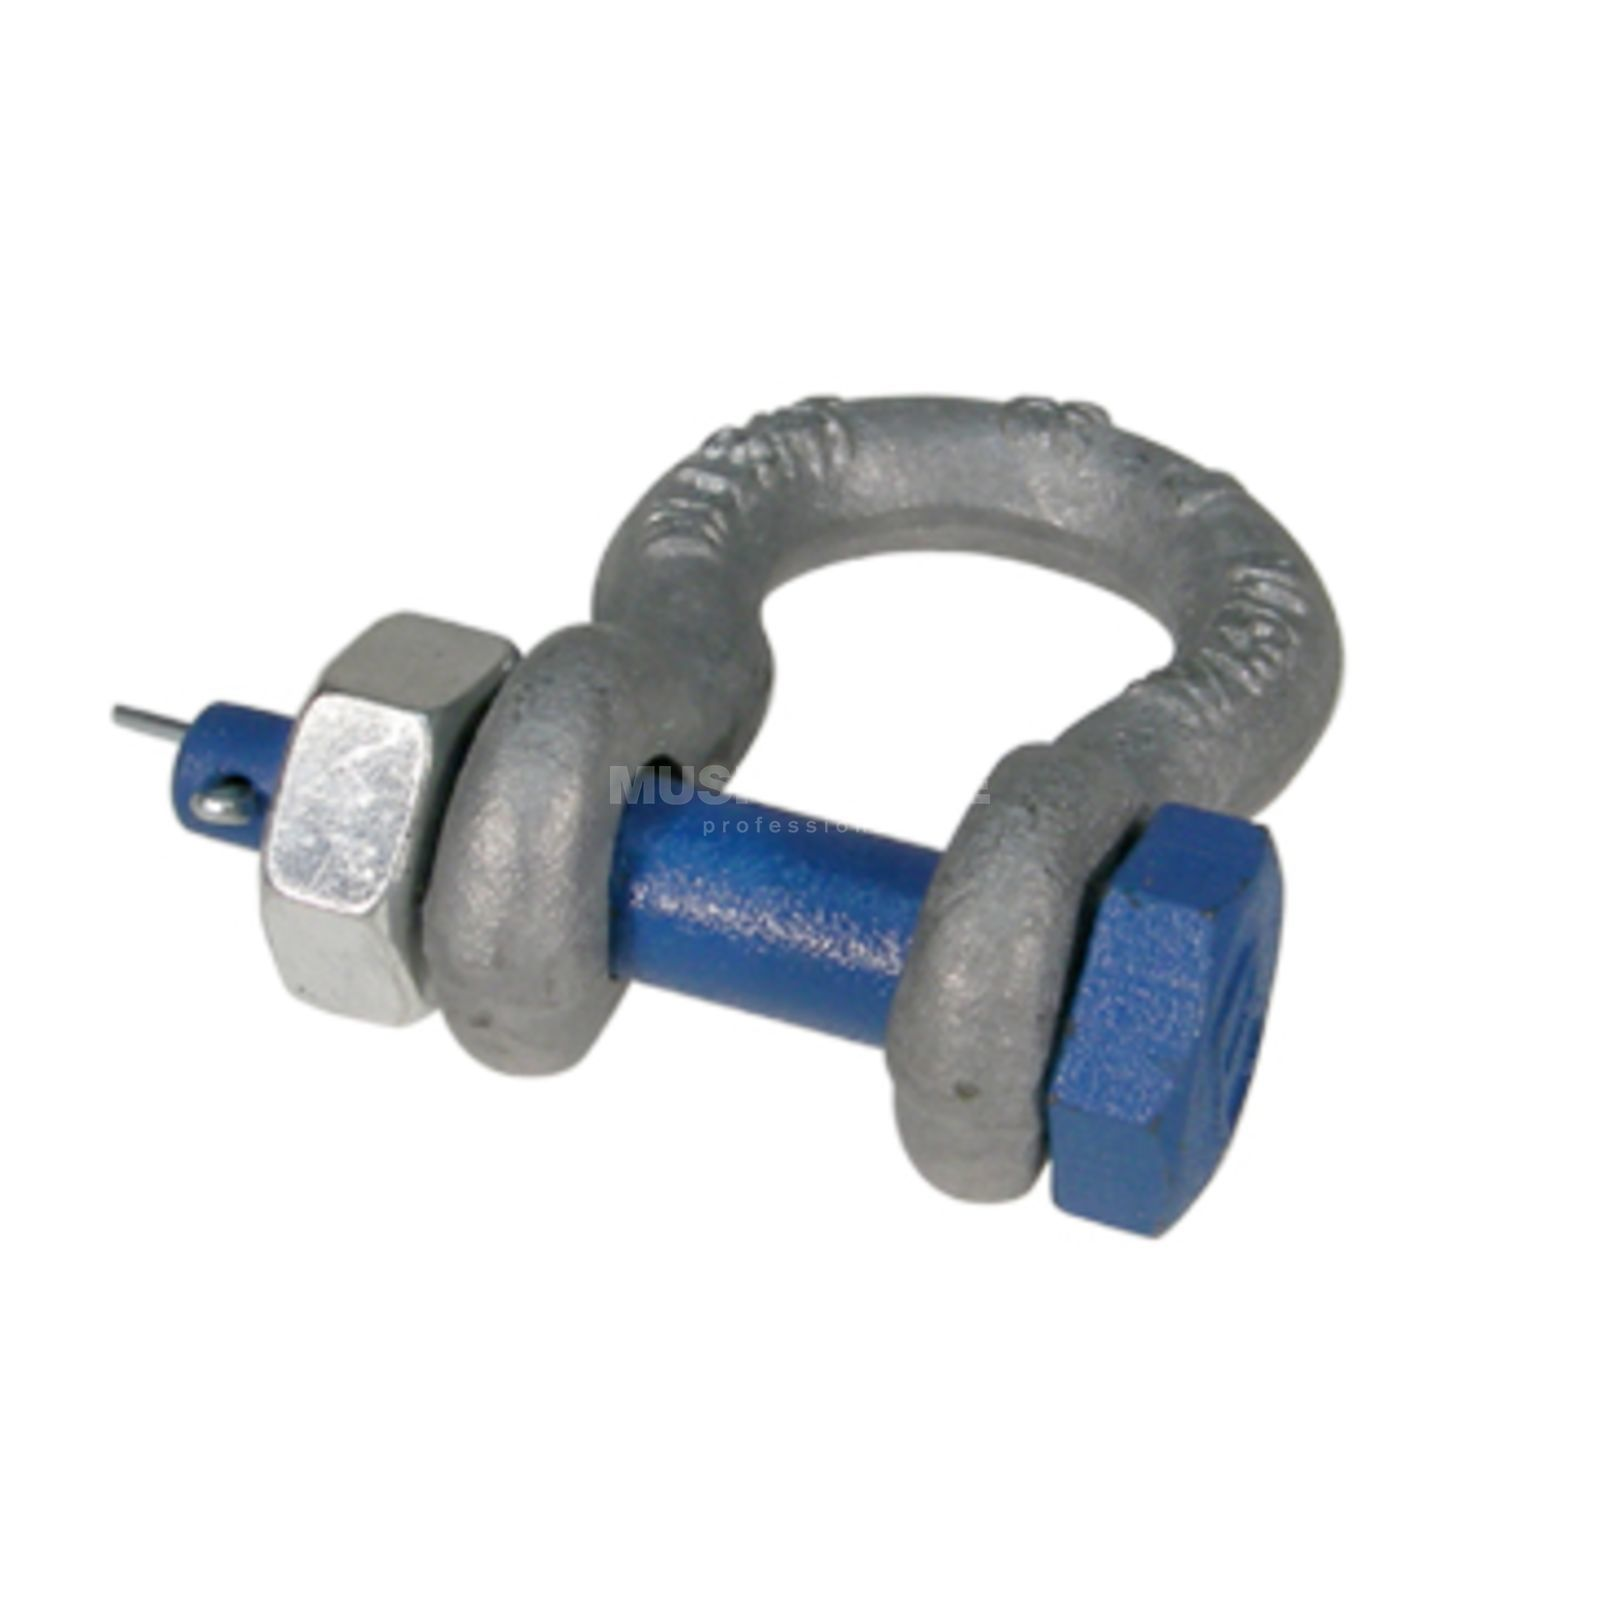 lightmaXX Safety Shackle with nut & cotter pin, BGVC1 Product Image